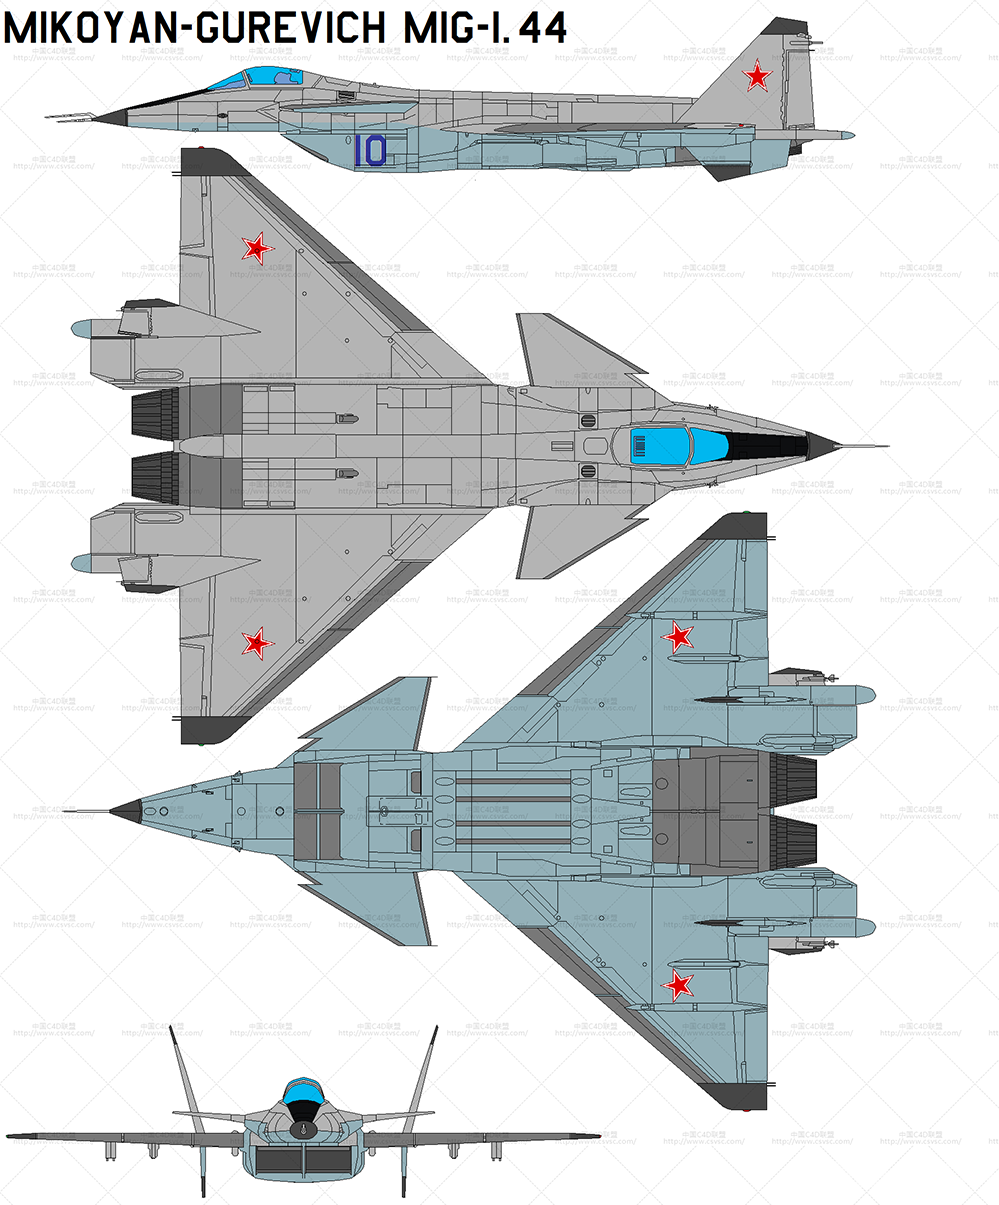 mikoyan_gurevich_mig_1_44_by_bagera3005.png